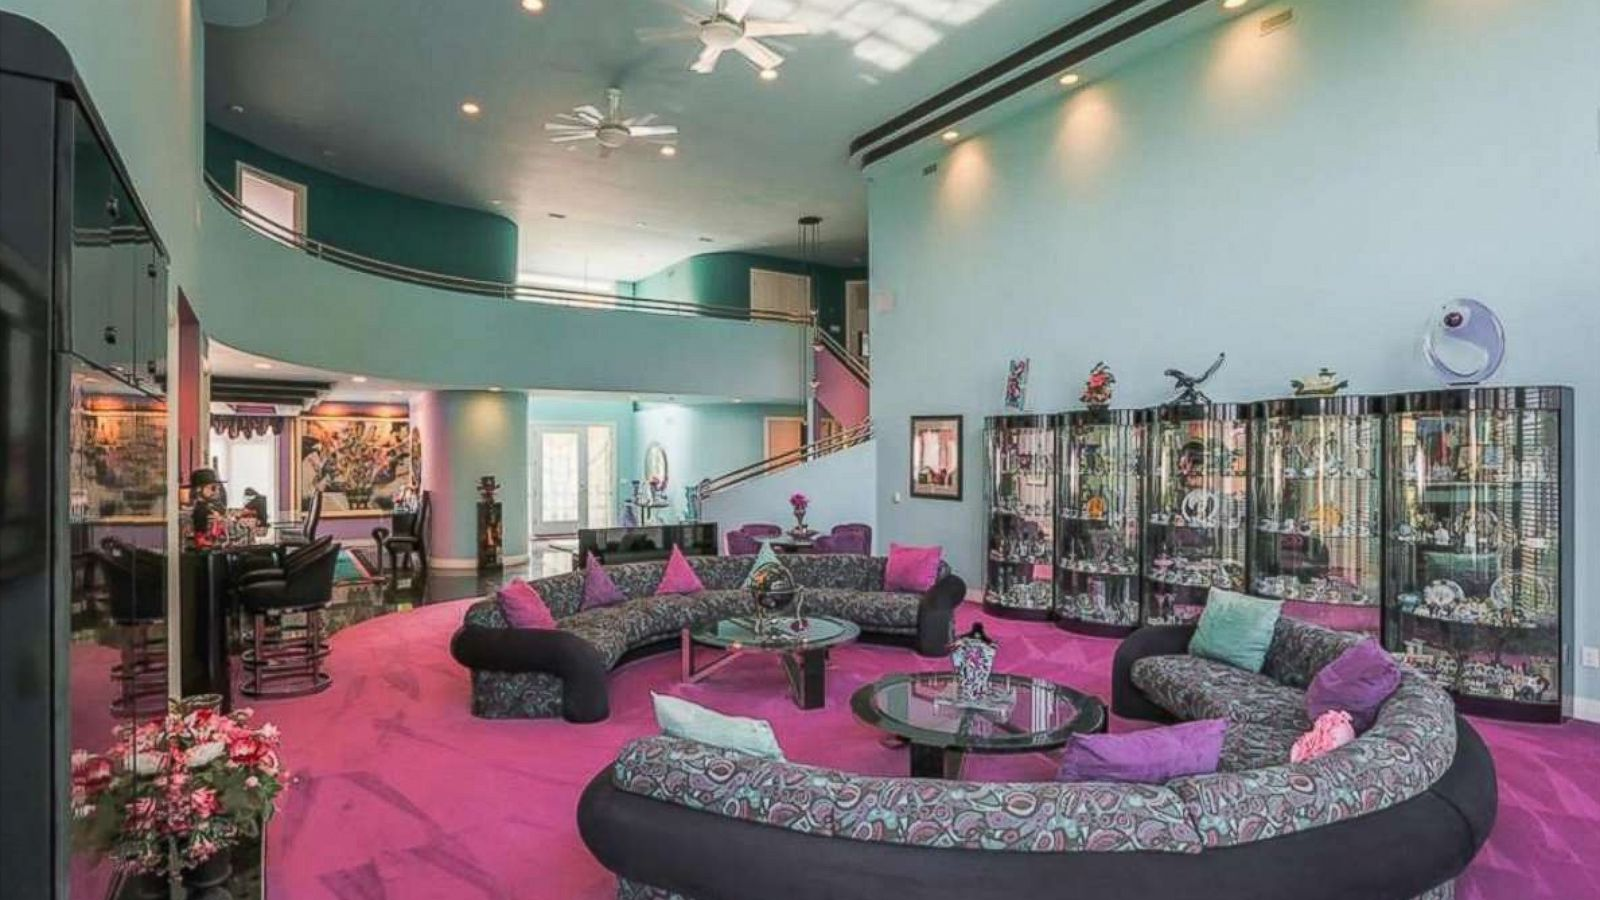 Mansion Decorated In Fly 90s Style Listed For Sale Abc News